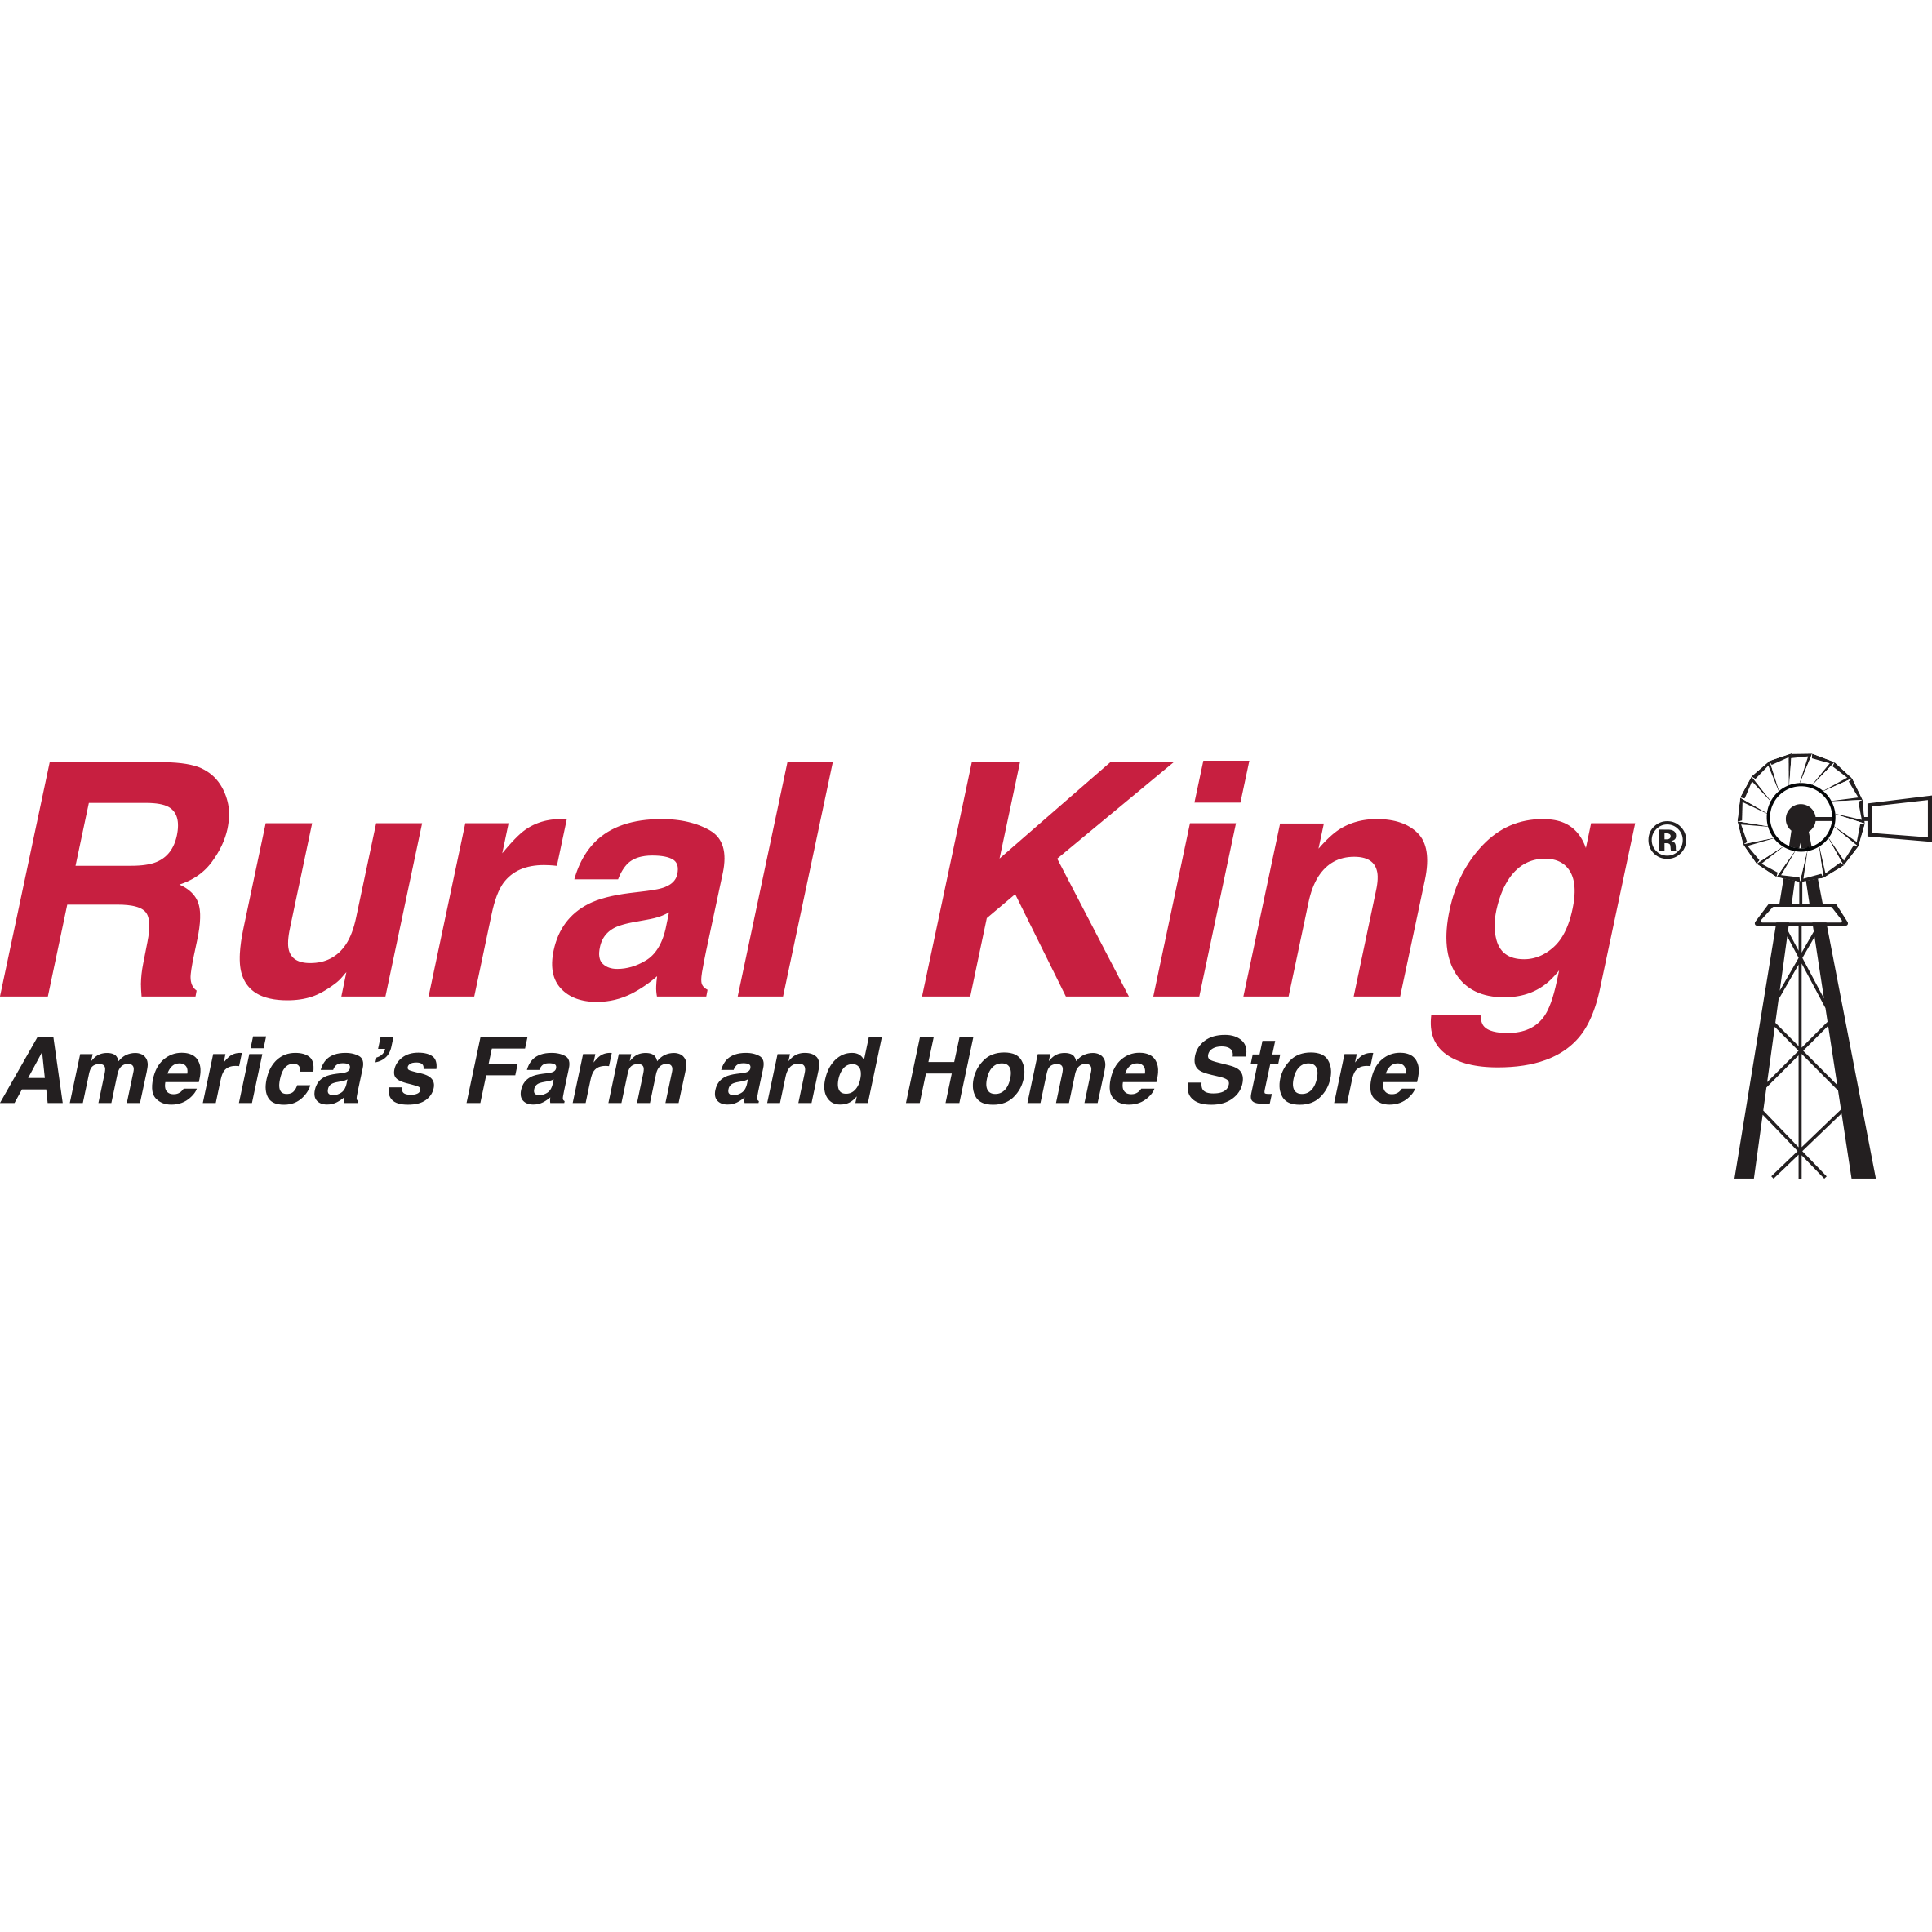 Rural King image 6